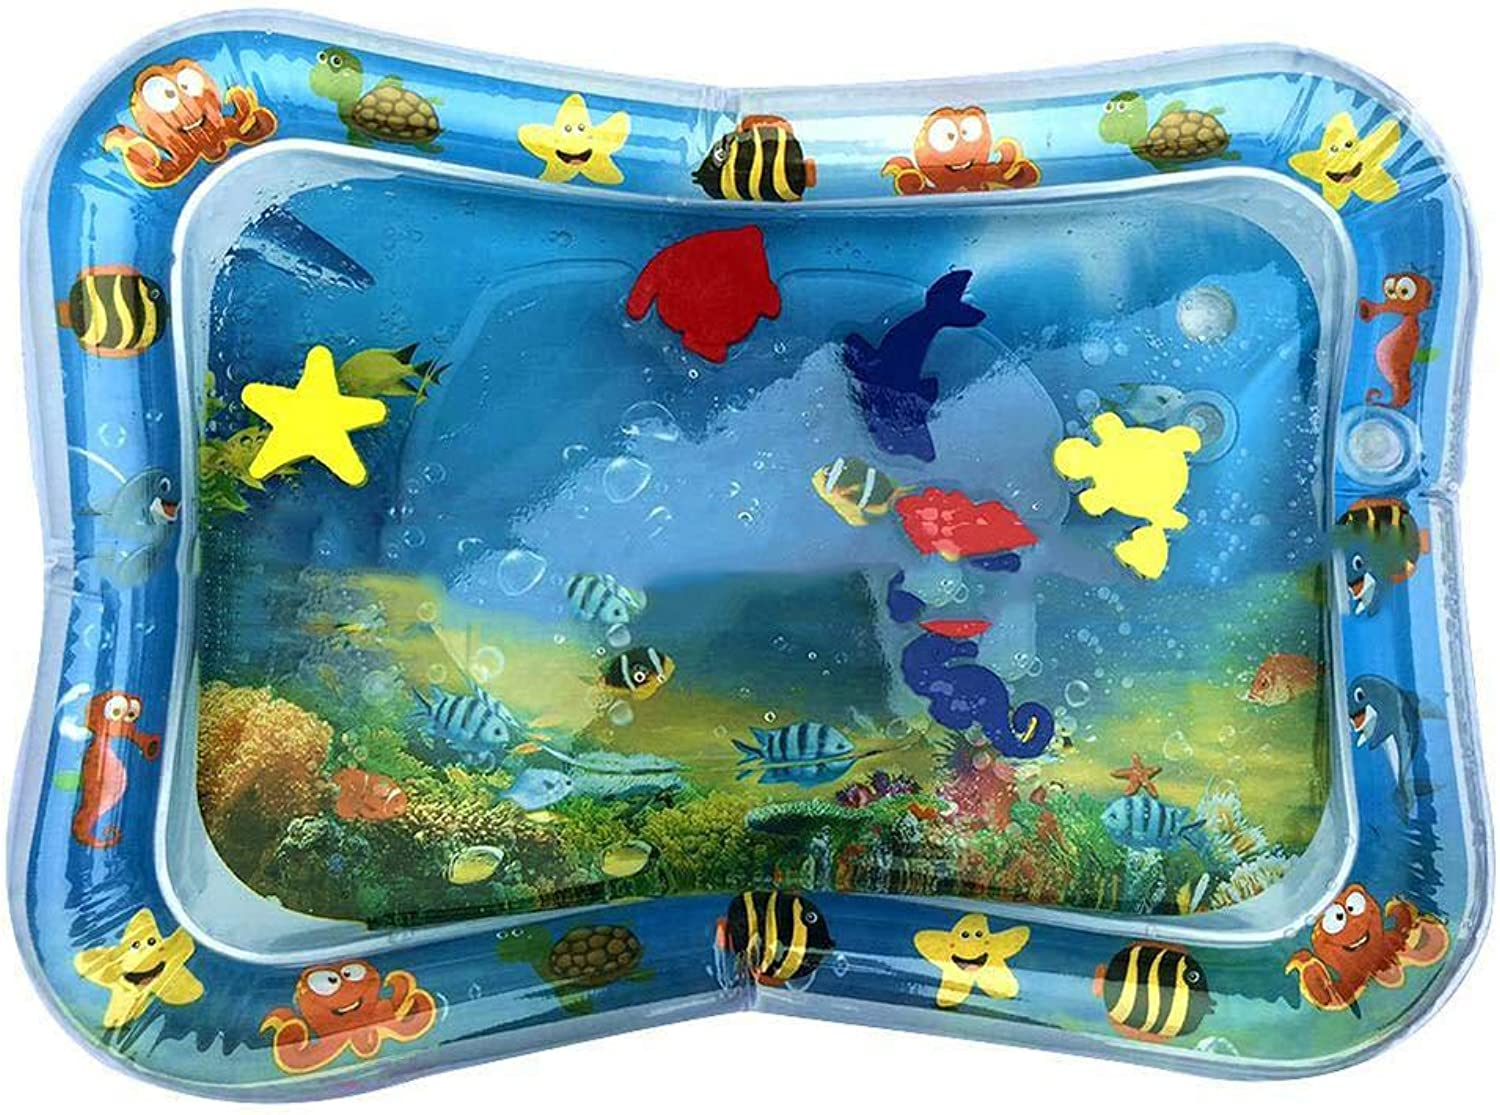 Water Play Mat for Kids Fun, Development Accessory Fun Water Play Mat for Infants Extra-Wide Backrest Inflatable Baby Water Mat Unisex